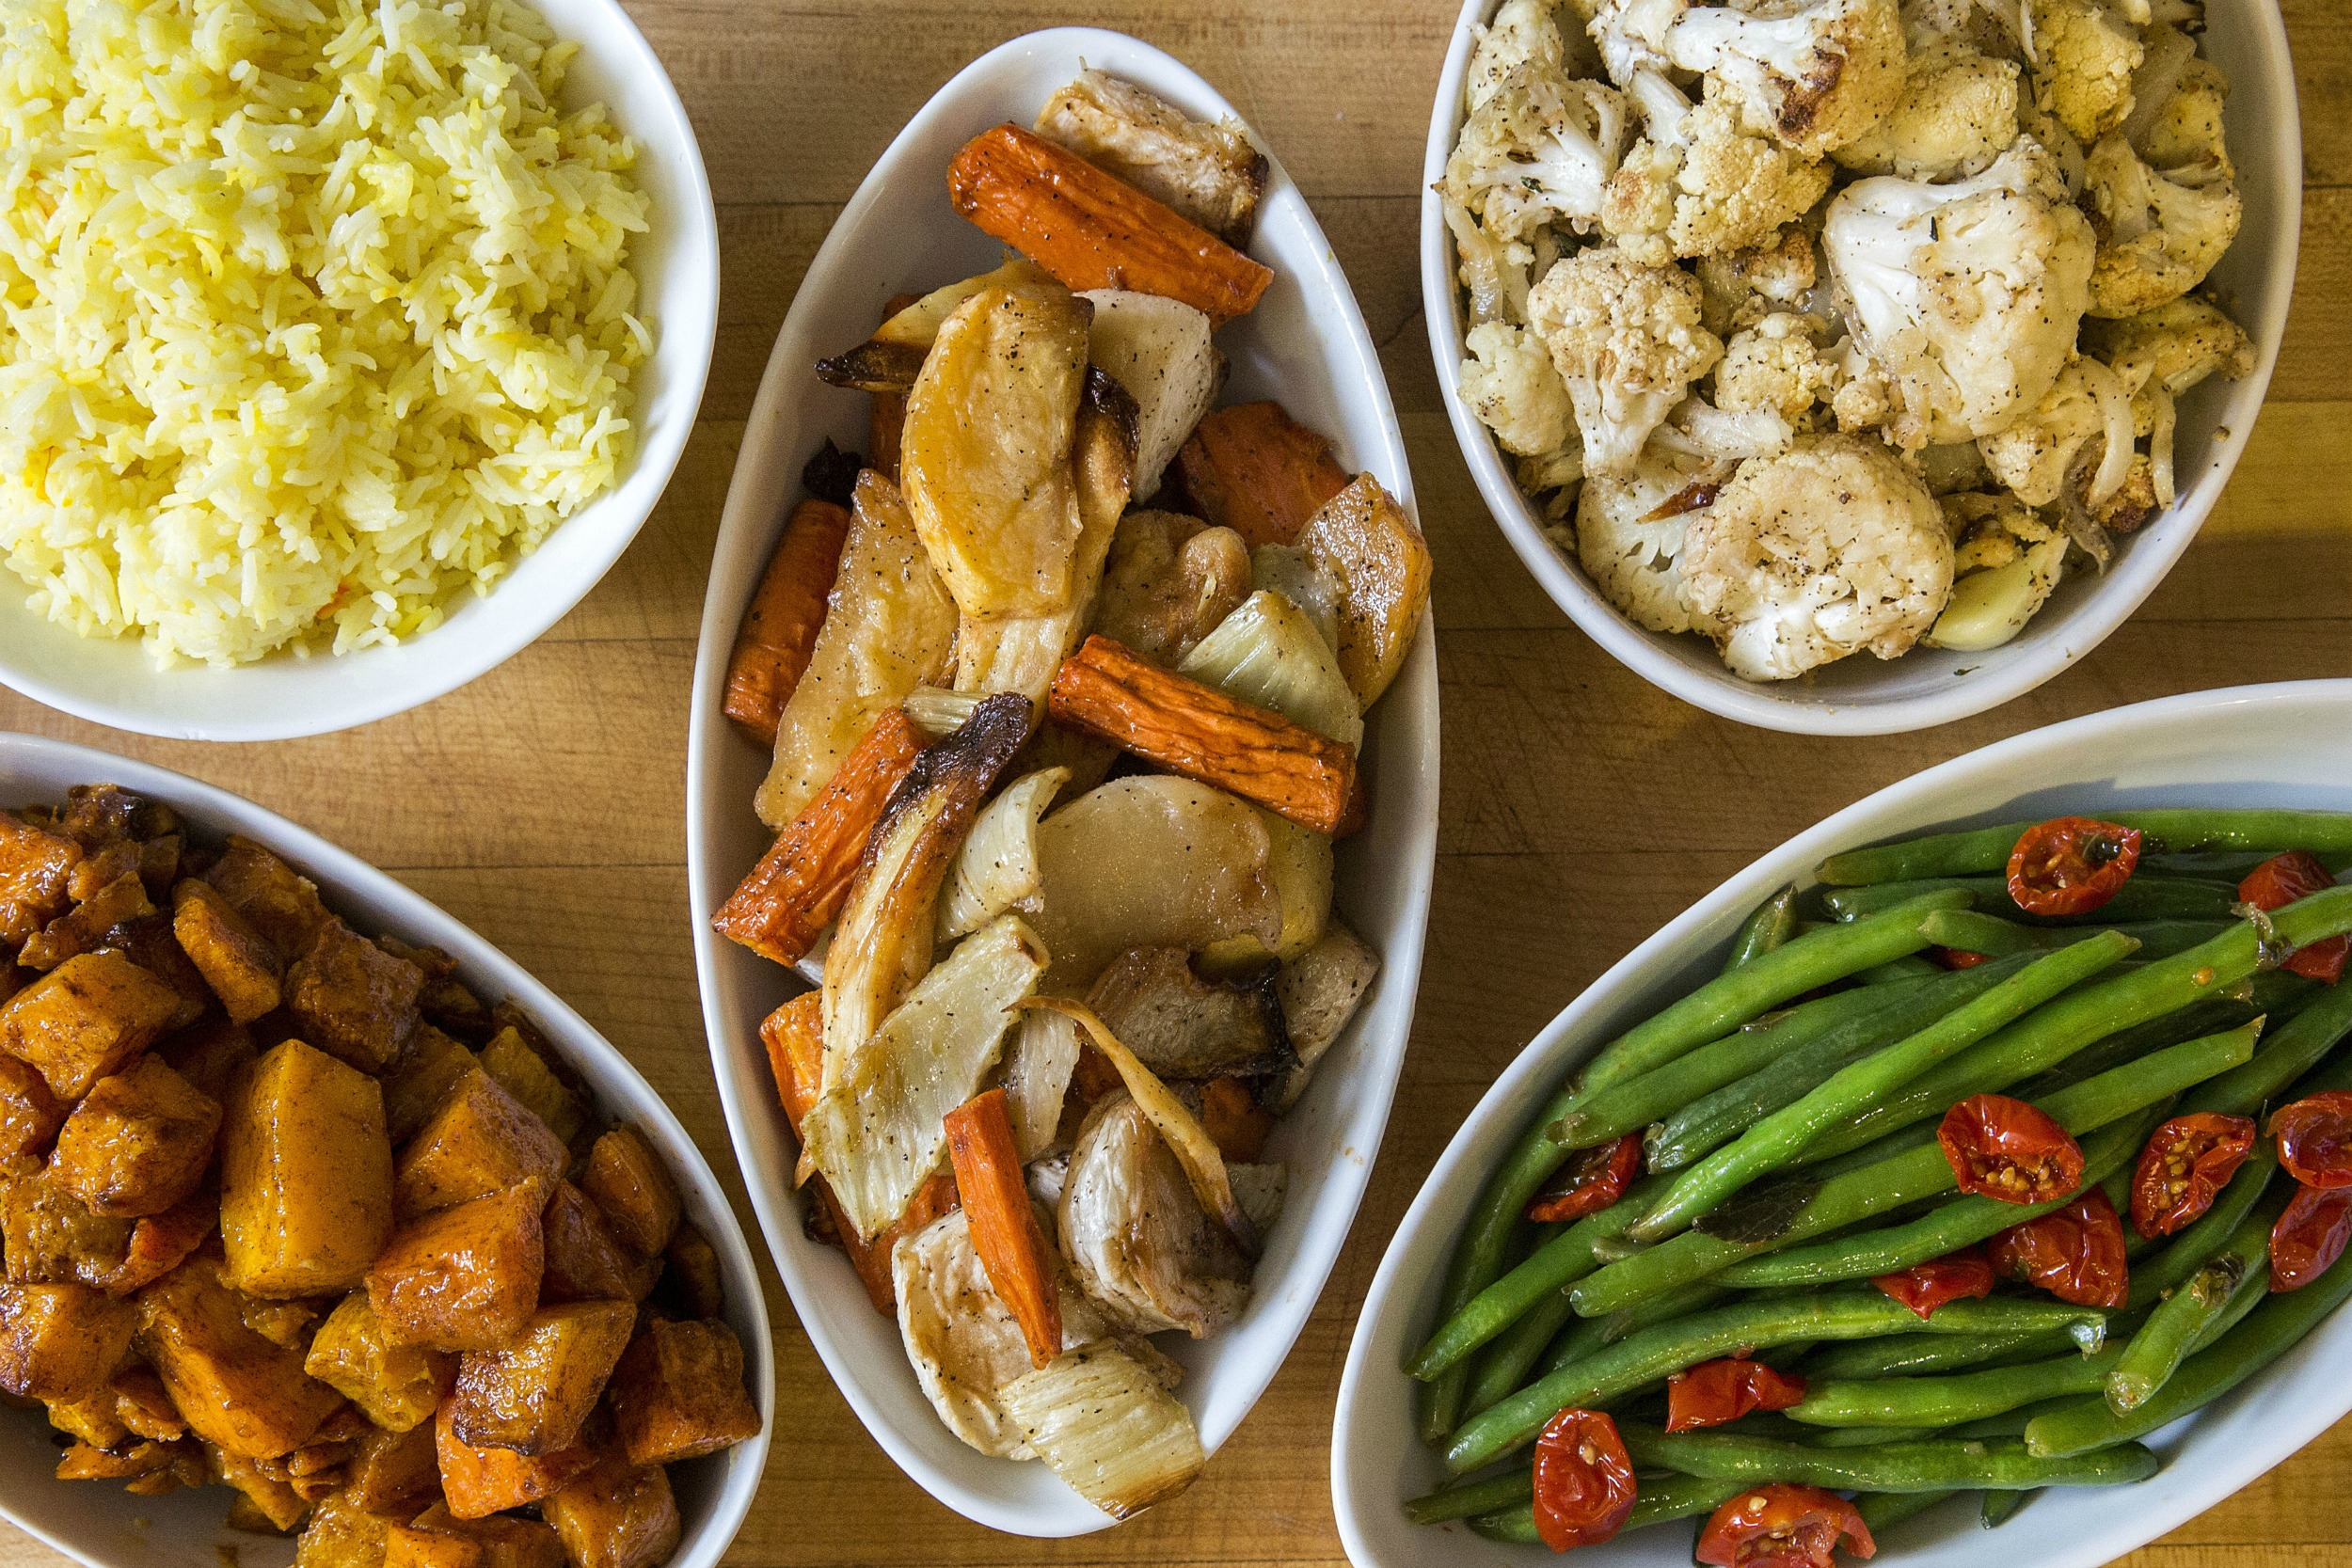 Popular Thanksgiving Side Dishes Ranked